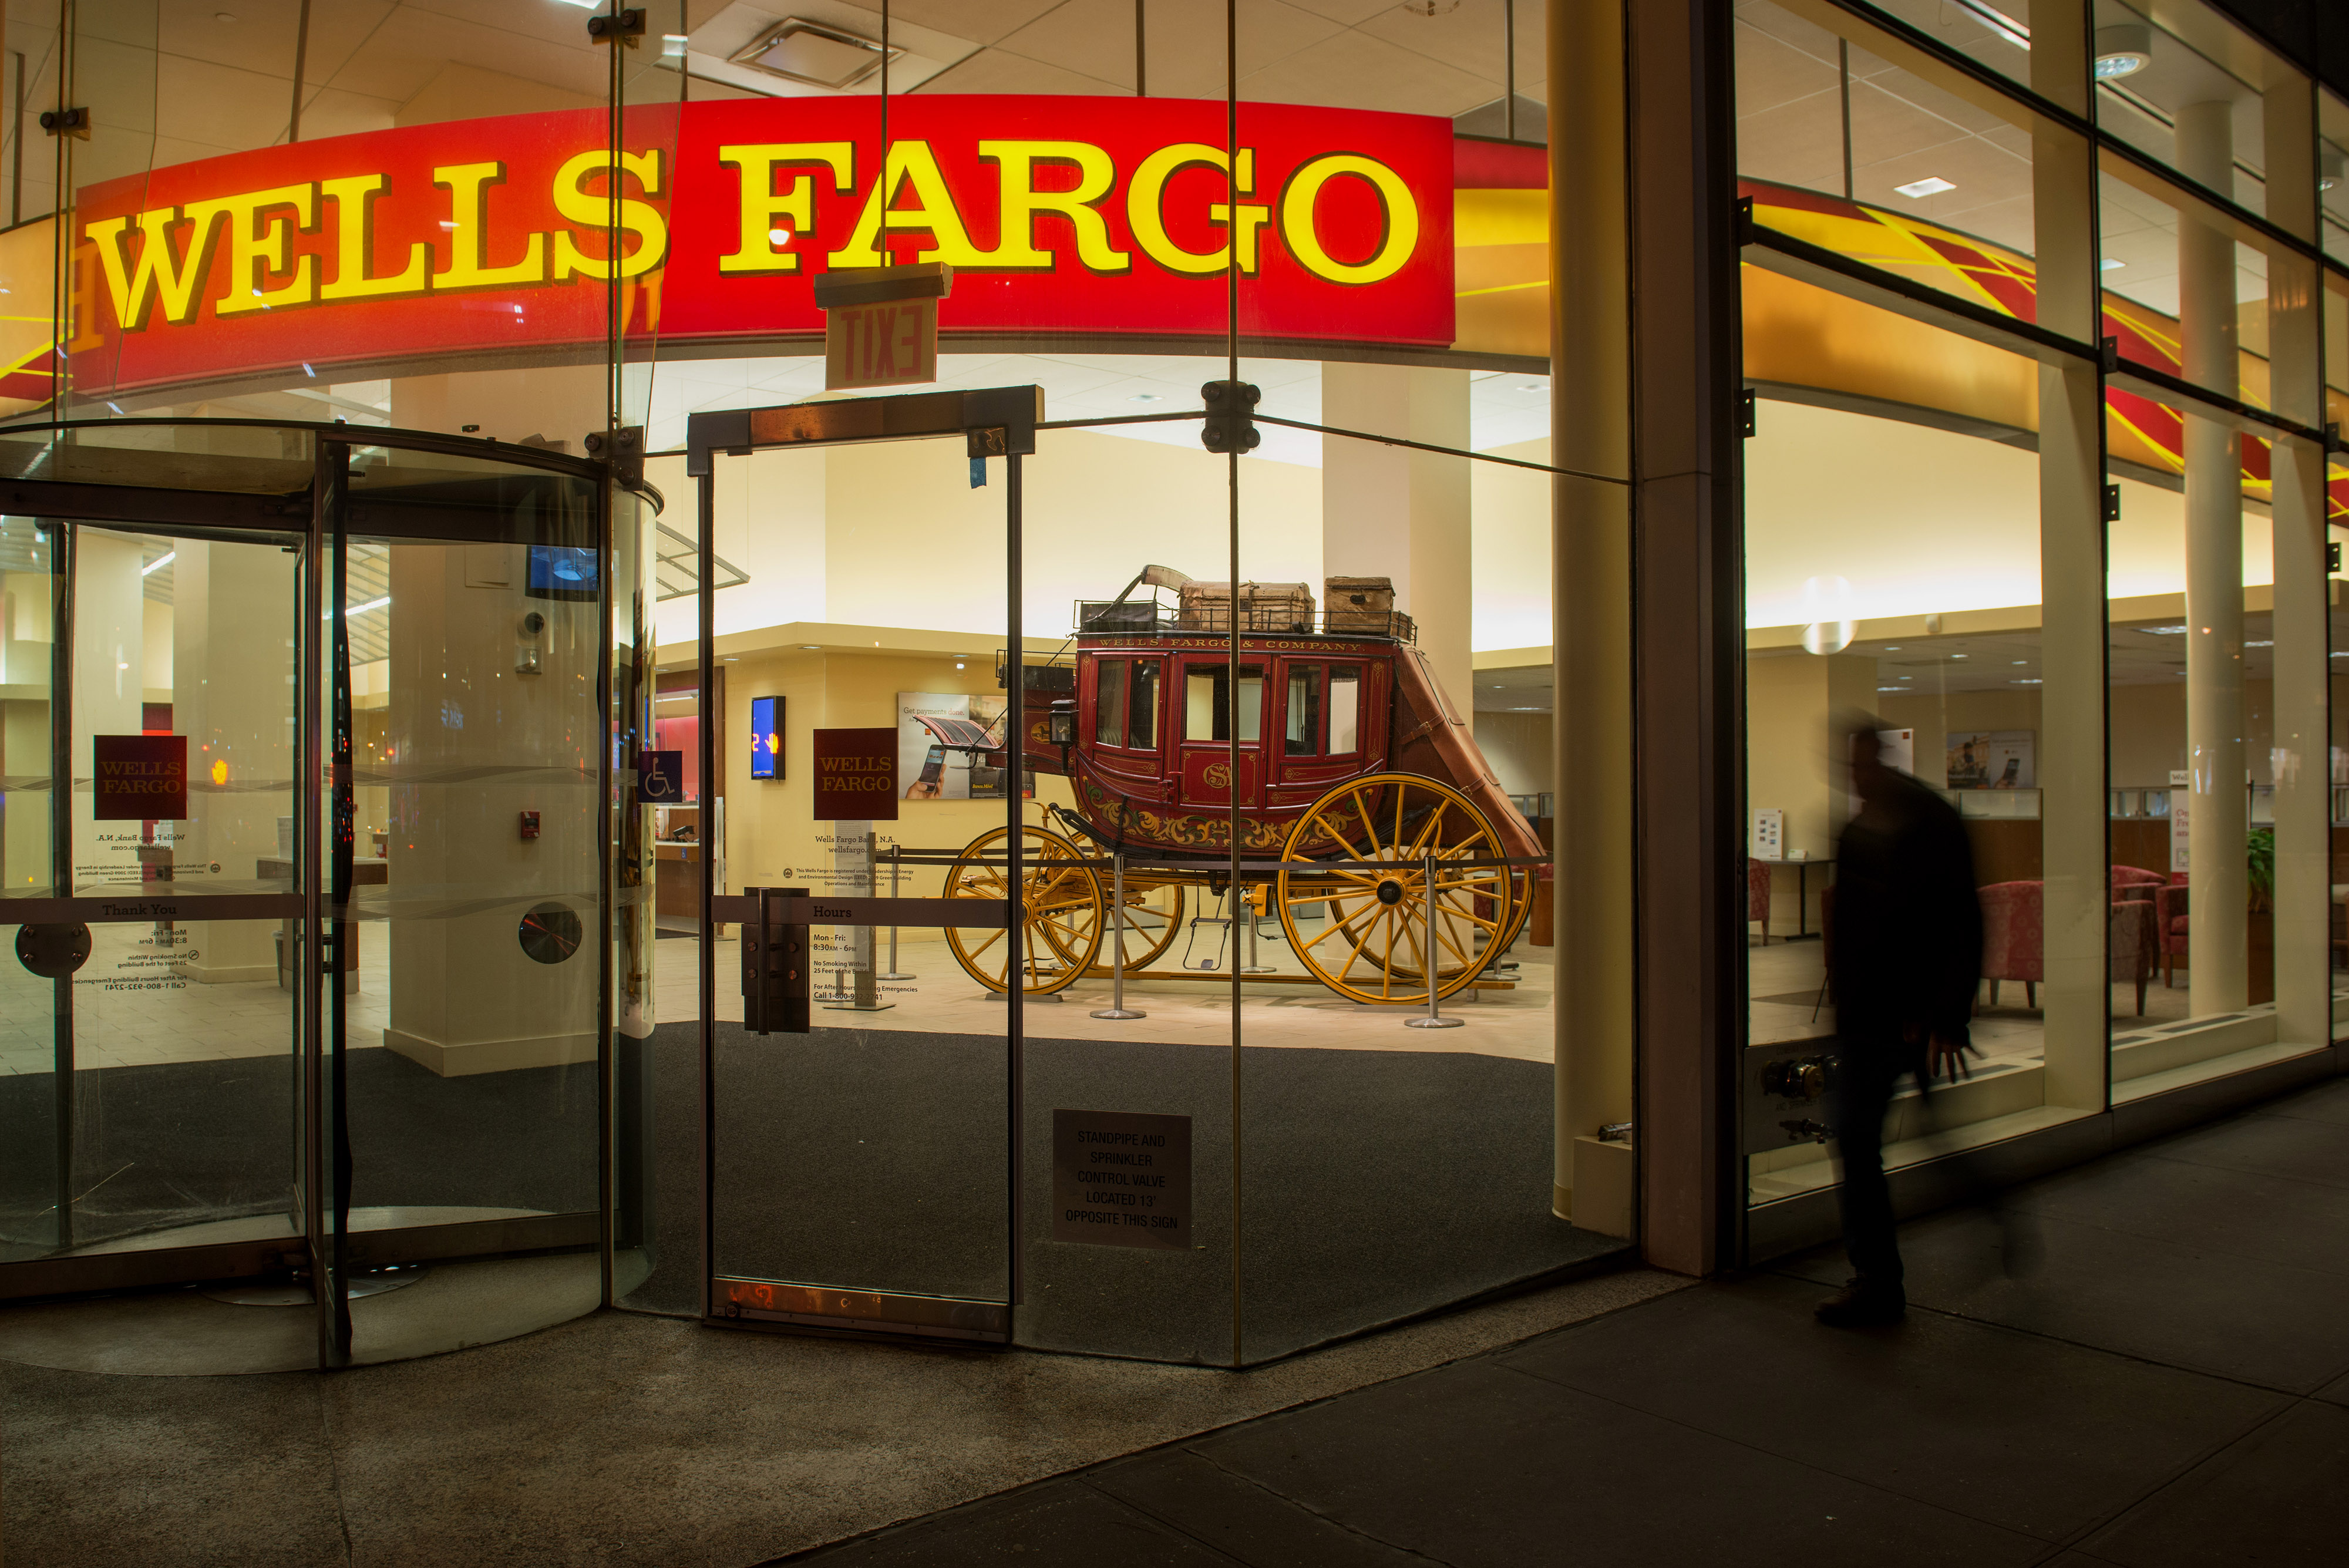 A Wells Fargo bank branch on Madison Avenue in Midtown Manhattan,  New York, U.S., on Saturday, April 11, 2015.  Photographer: Craig Warga/Bloomberg *** Local Caption ***